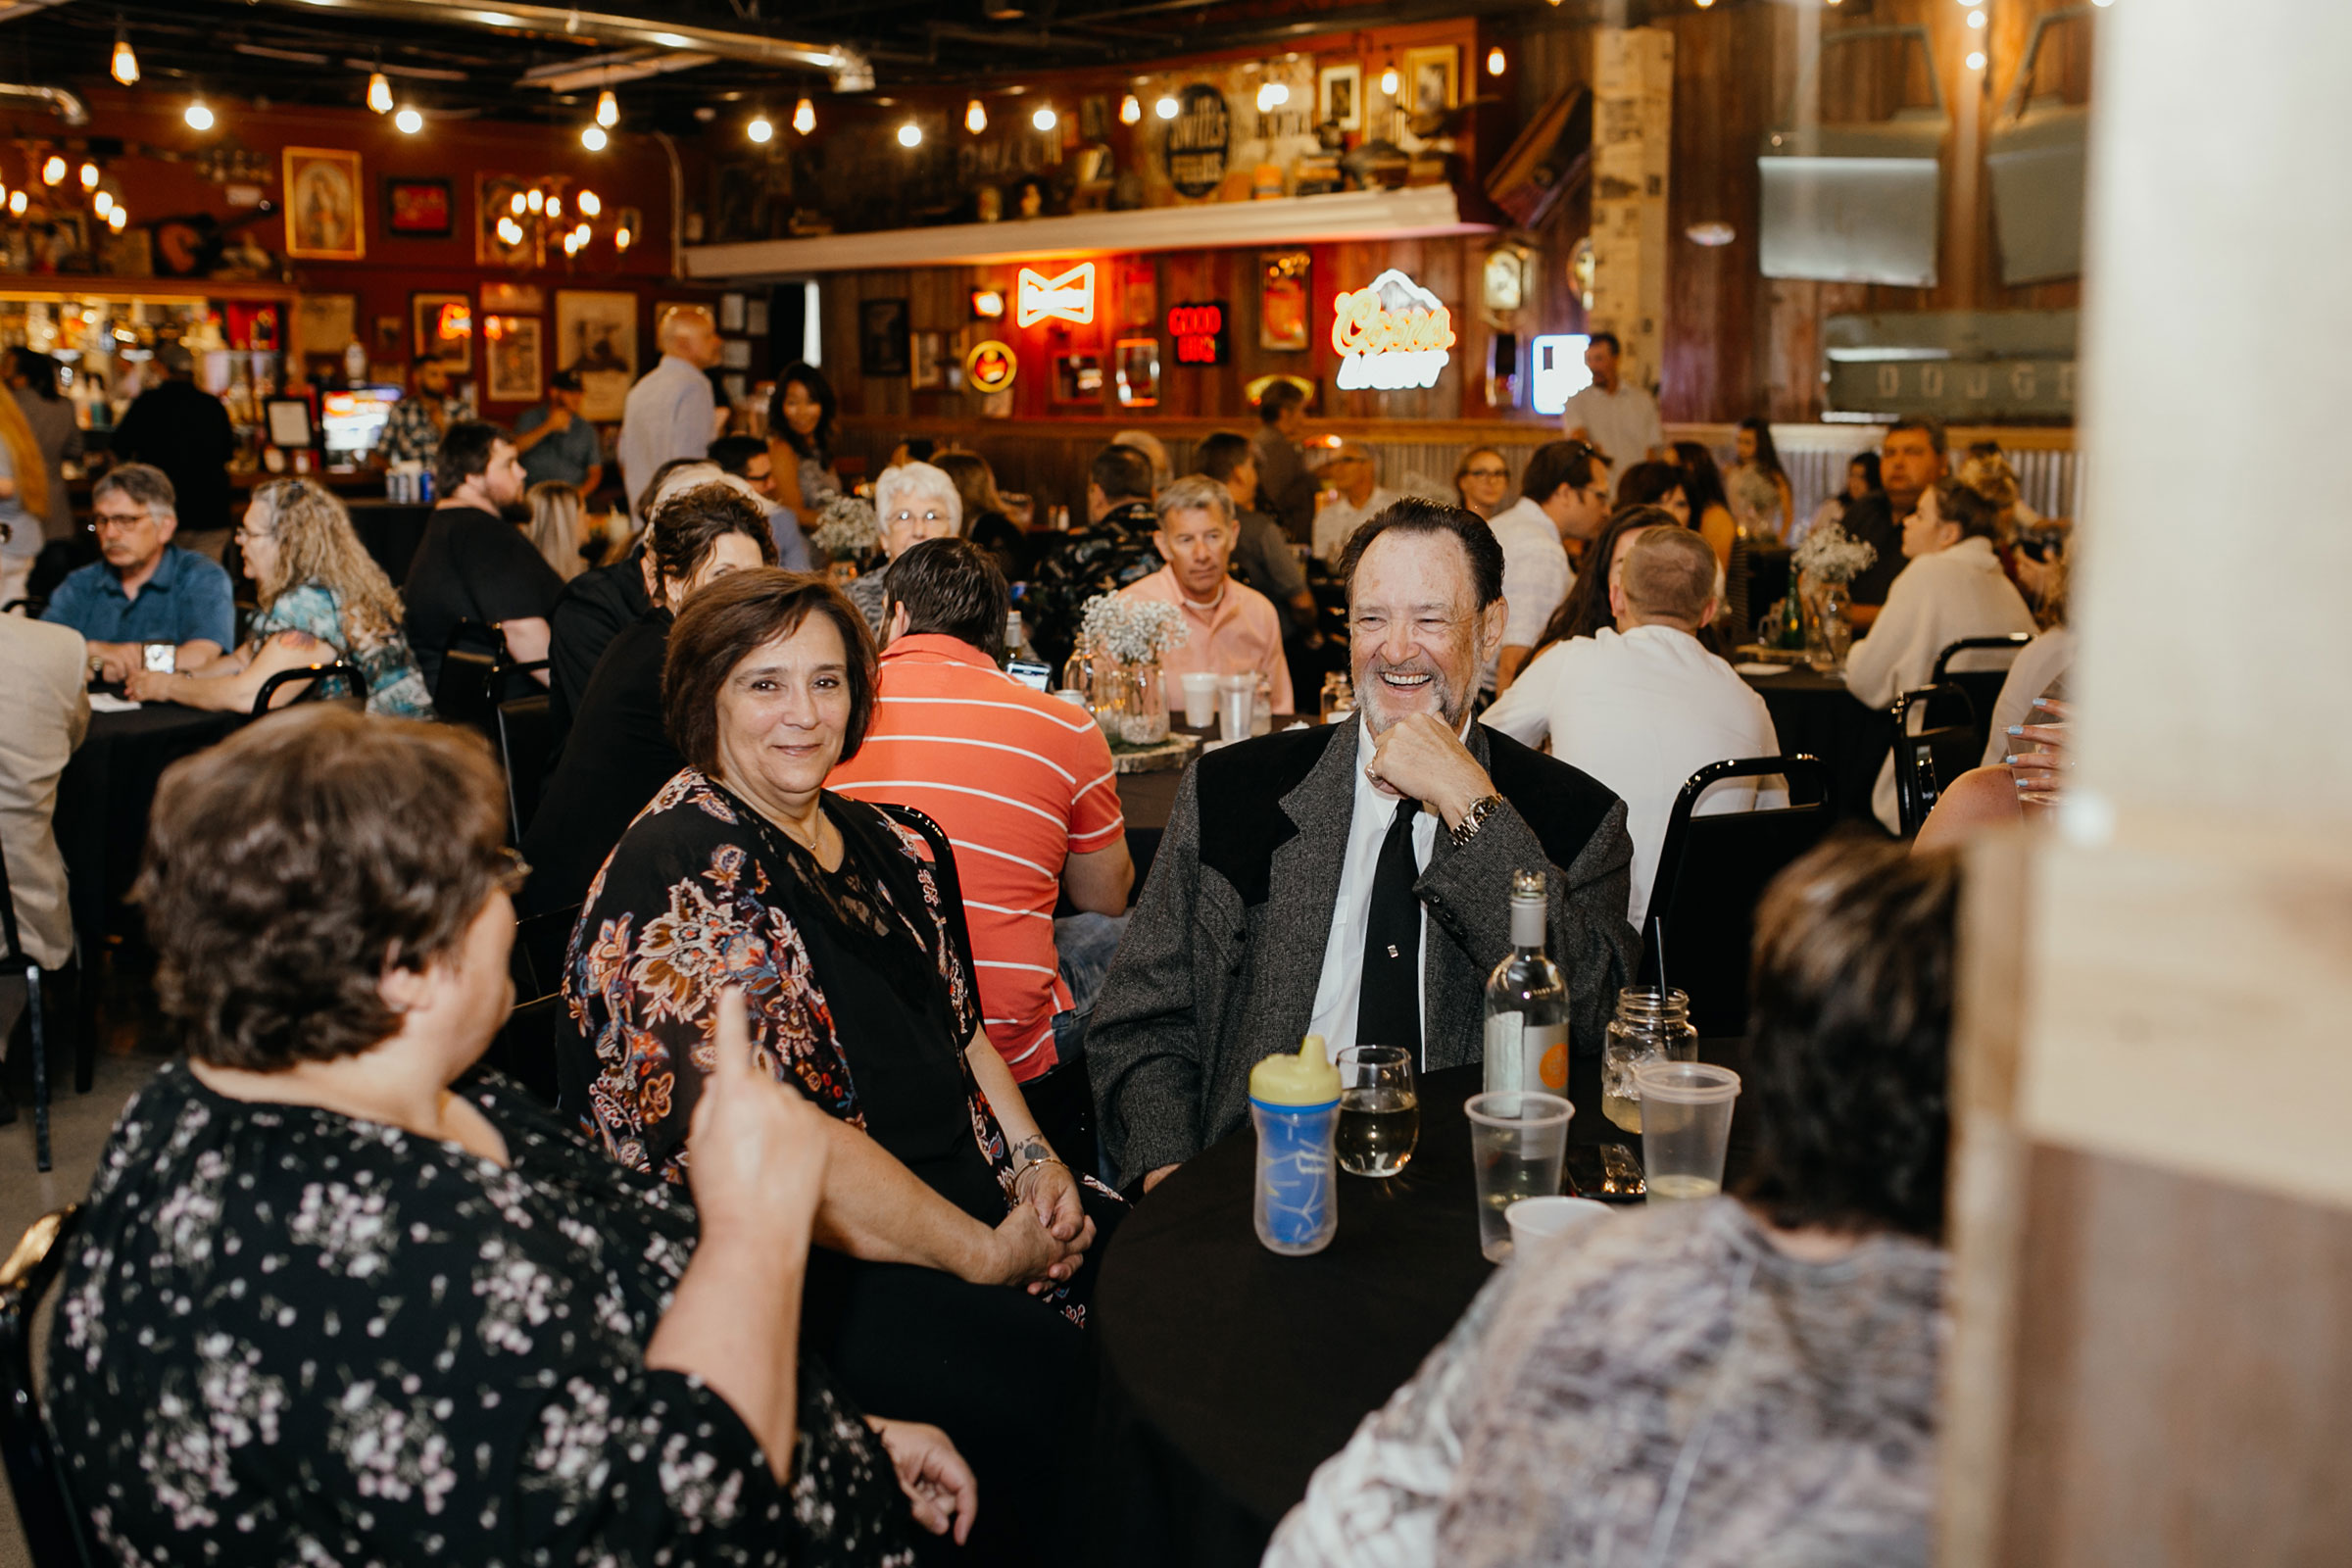 guest-laughing-at-tables-decades-event-center-building-desmoines-iowa-raelyn-ramey-photography..jpg